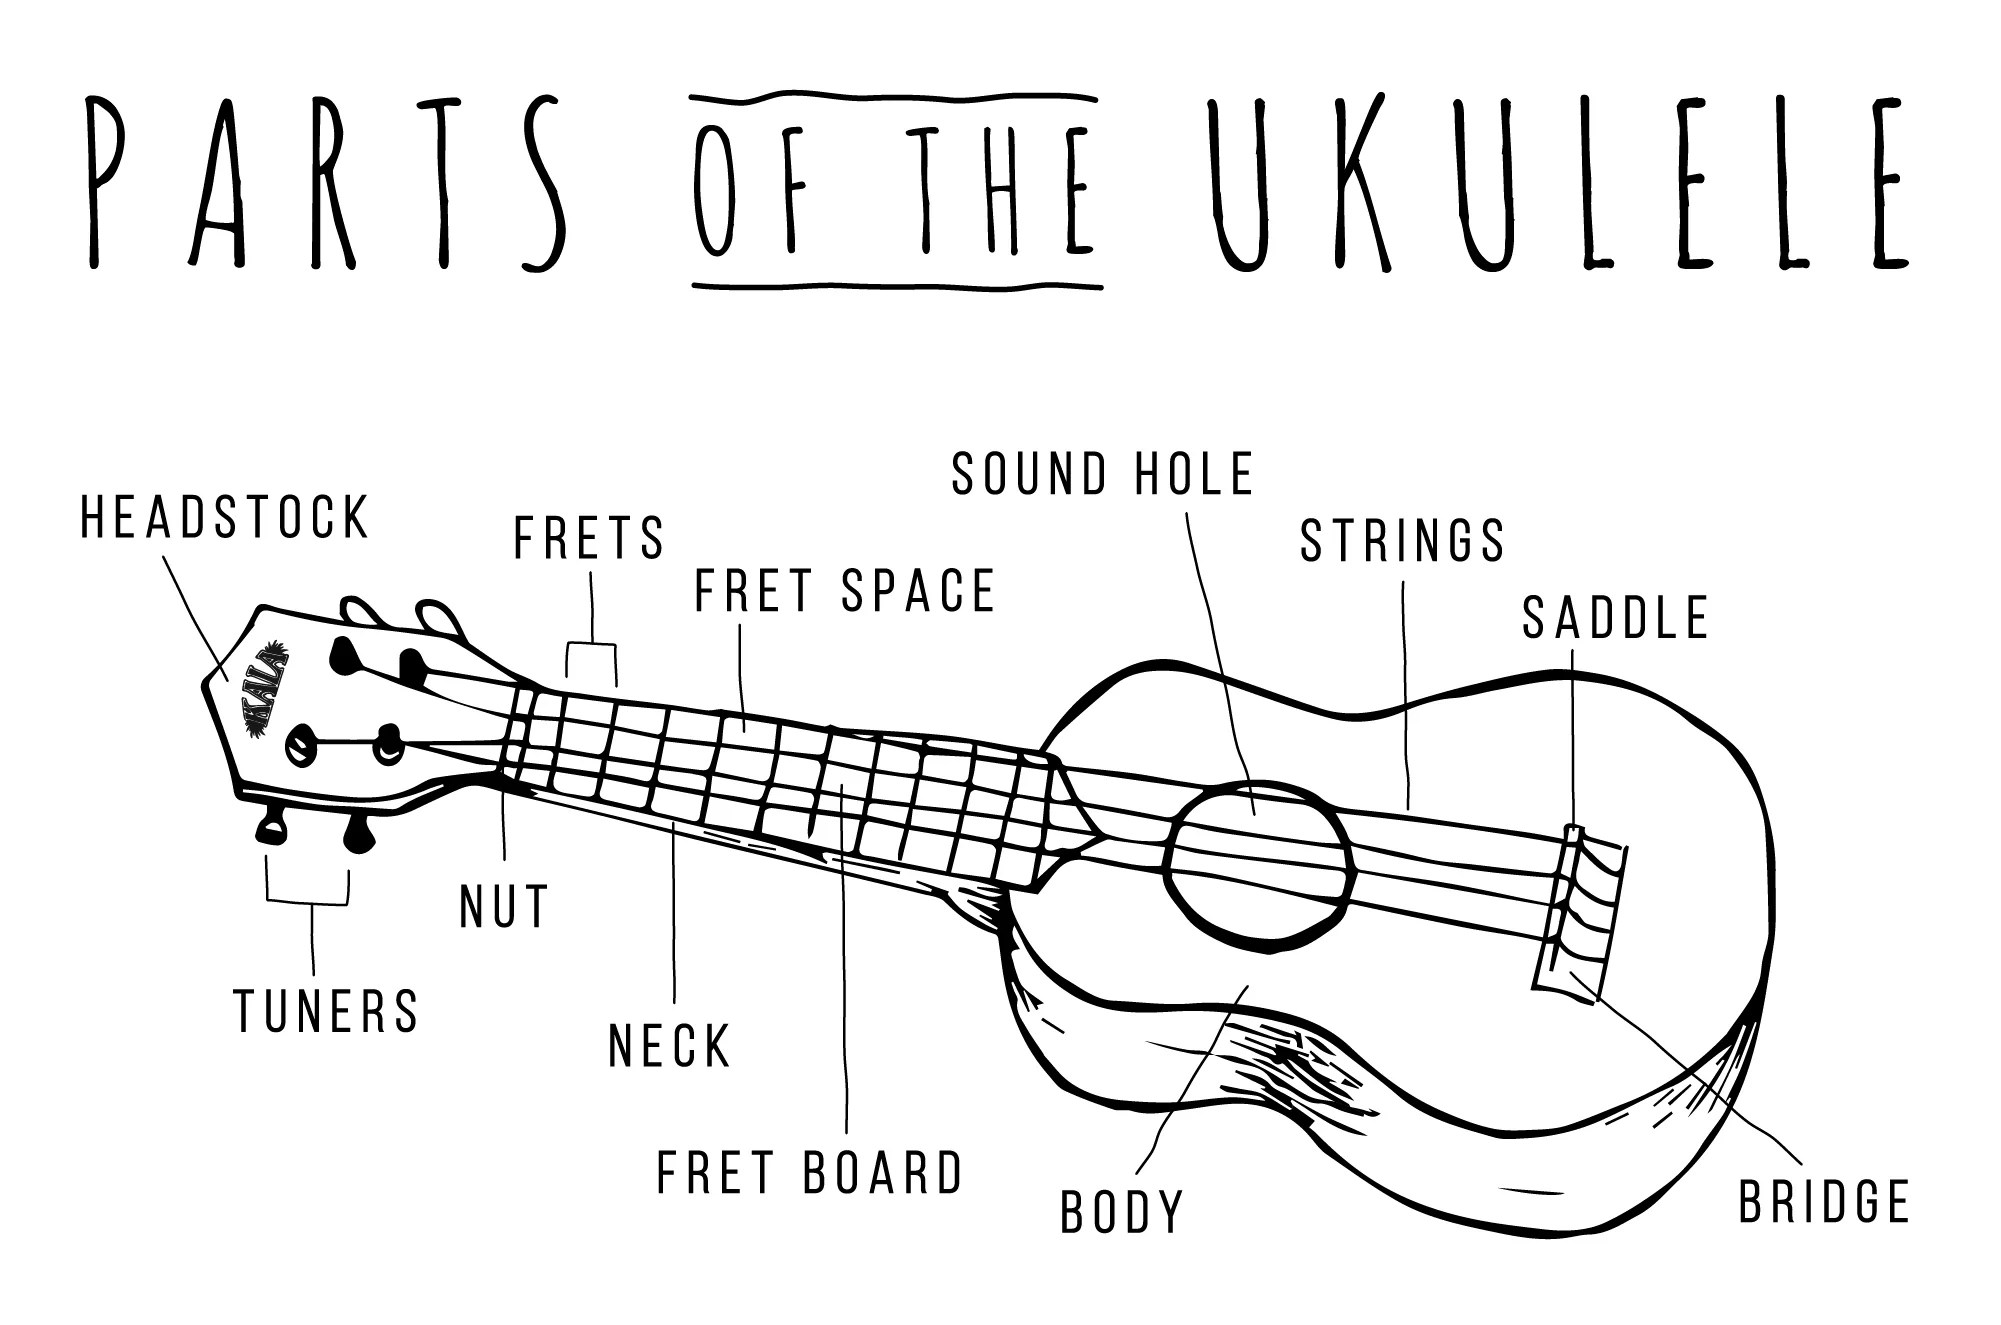 stringing a ukulele diagram